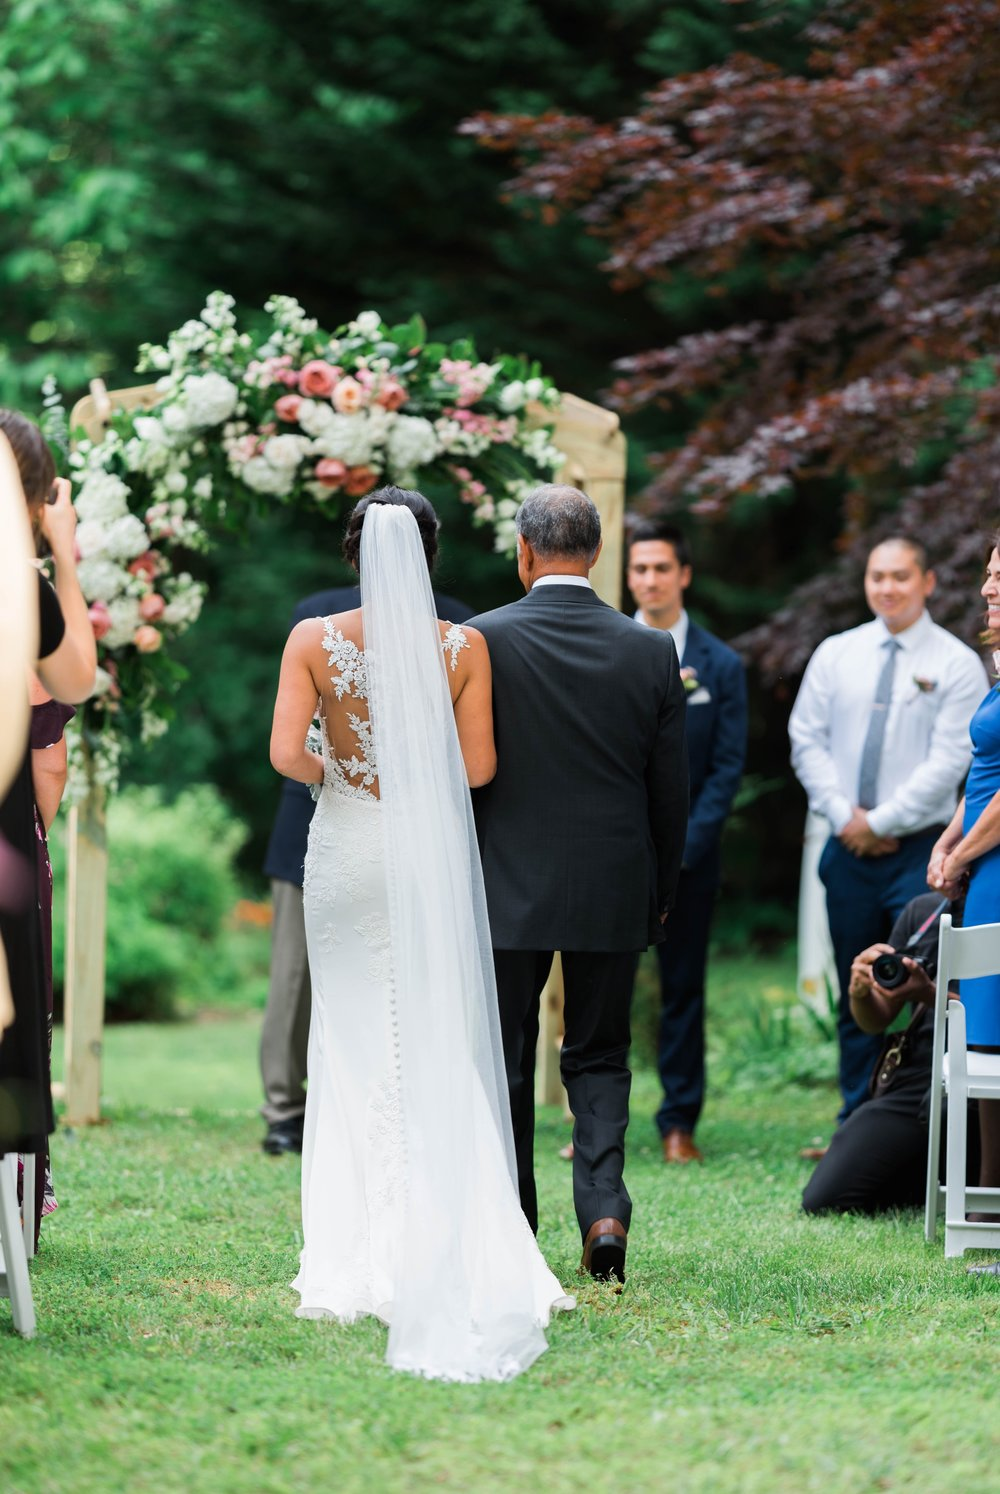 Williamsburgvawedding_backyardwedding_virginiaweddingphotographer_lynchburgweddingphotographer_PaulAliya 12.jpg